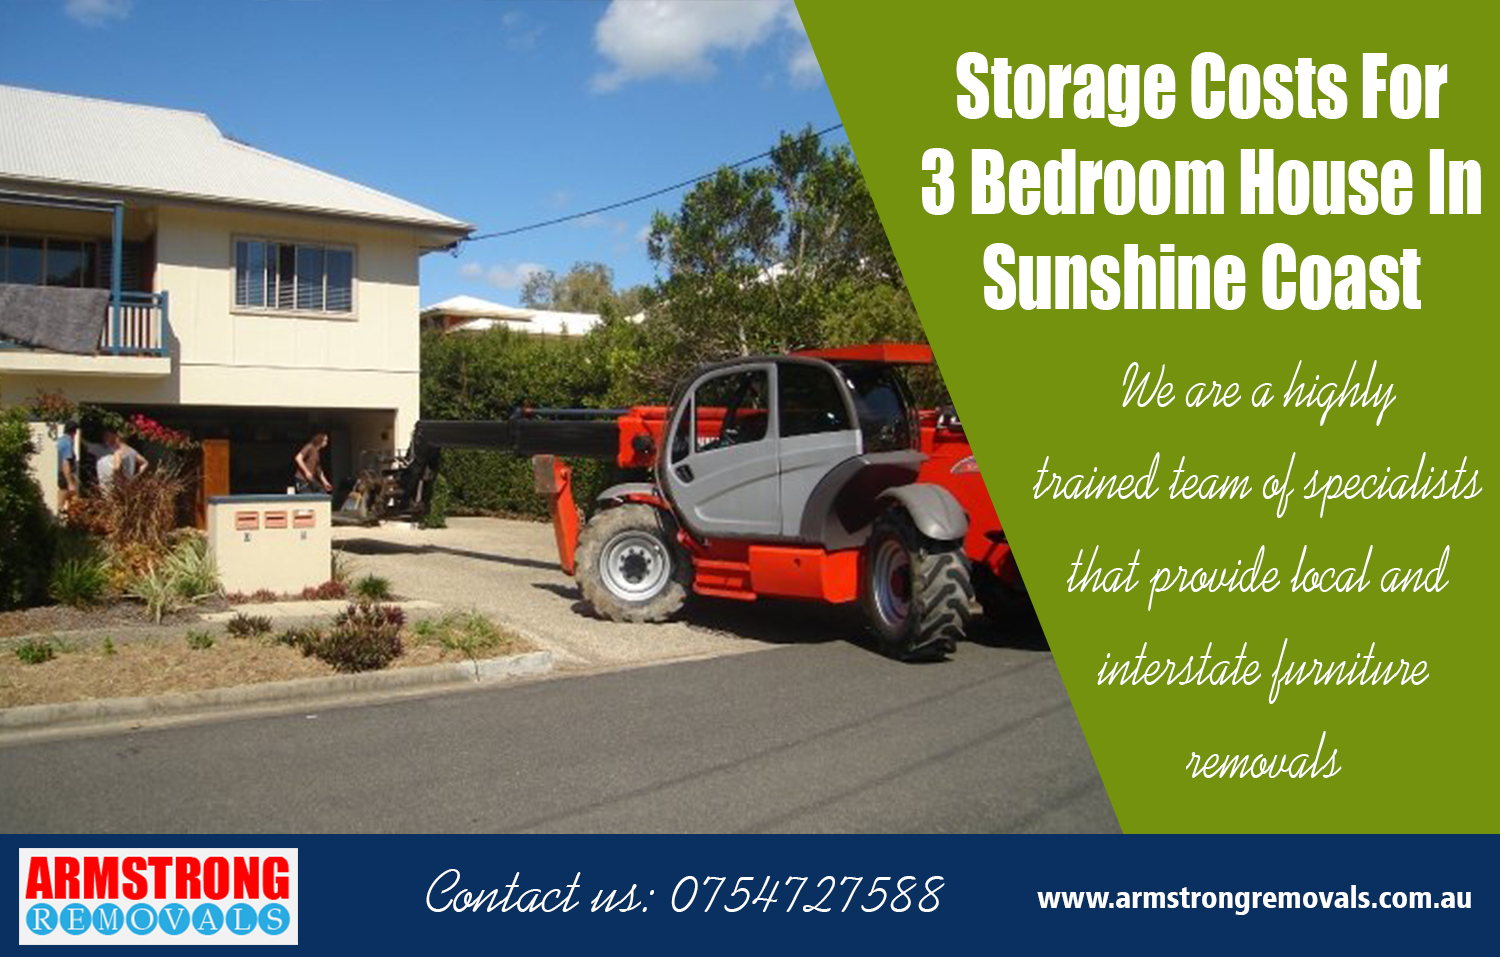 Storage Costs For 3 Bedroom House In Sunshine Coast